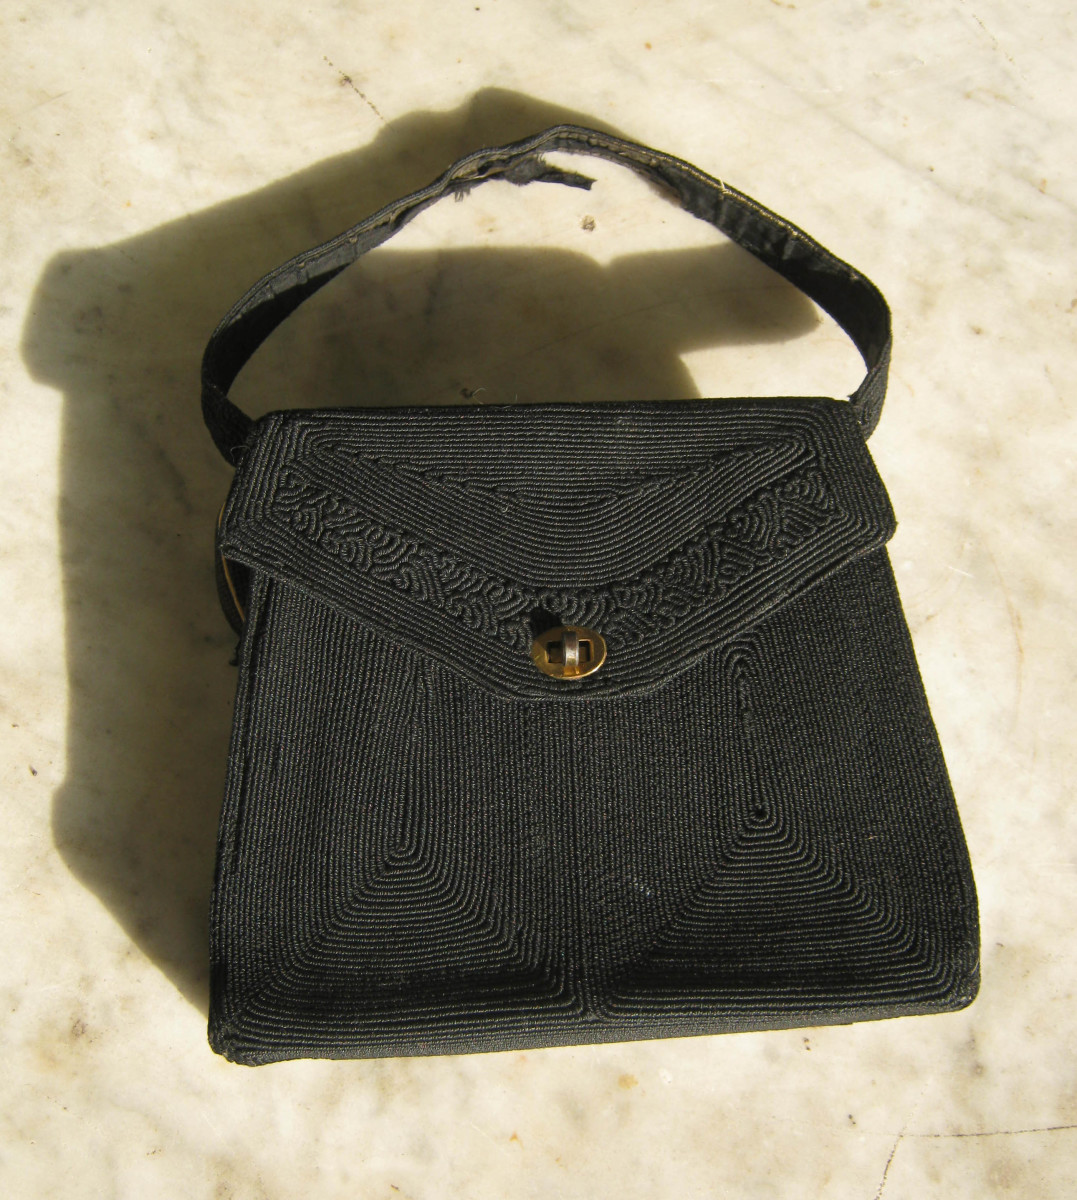 Vintage bag from the 1940's